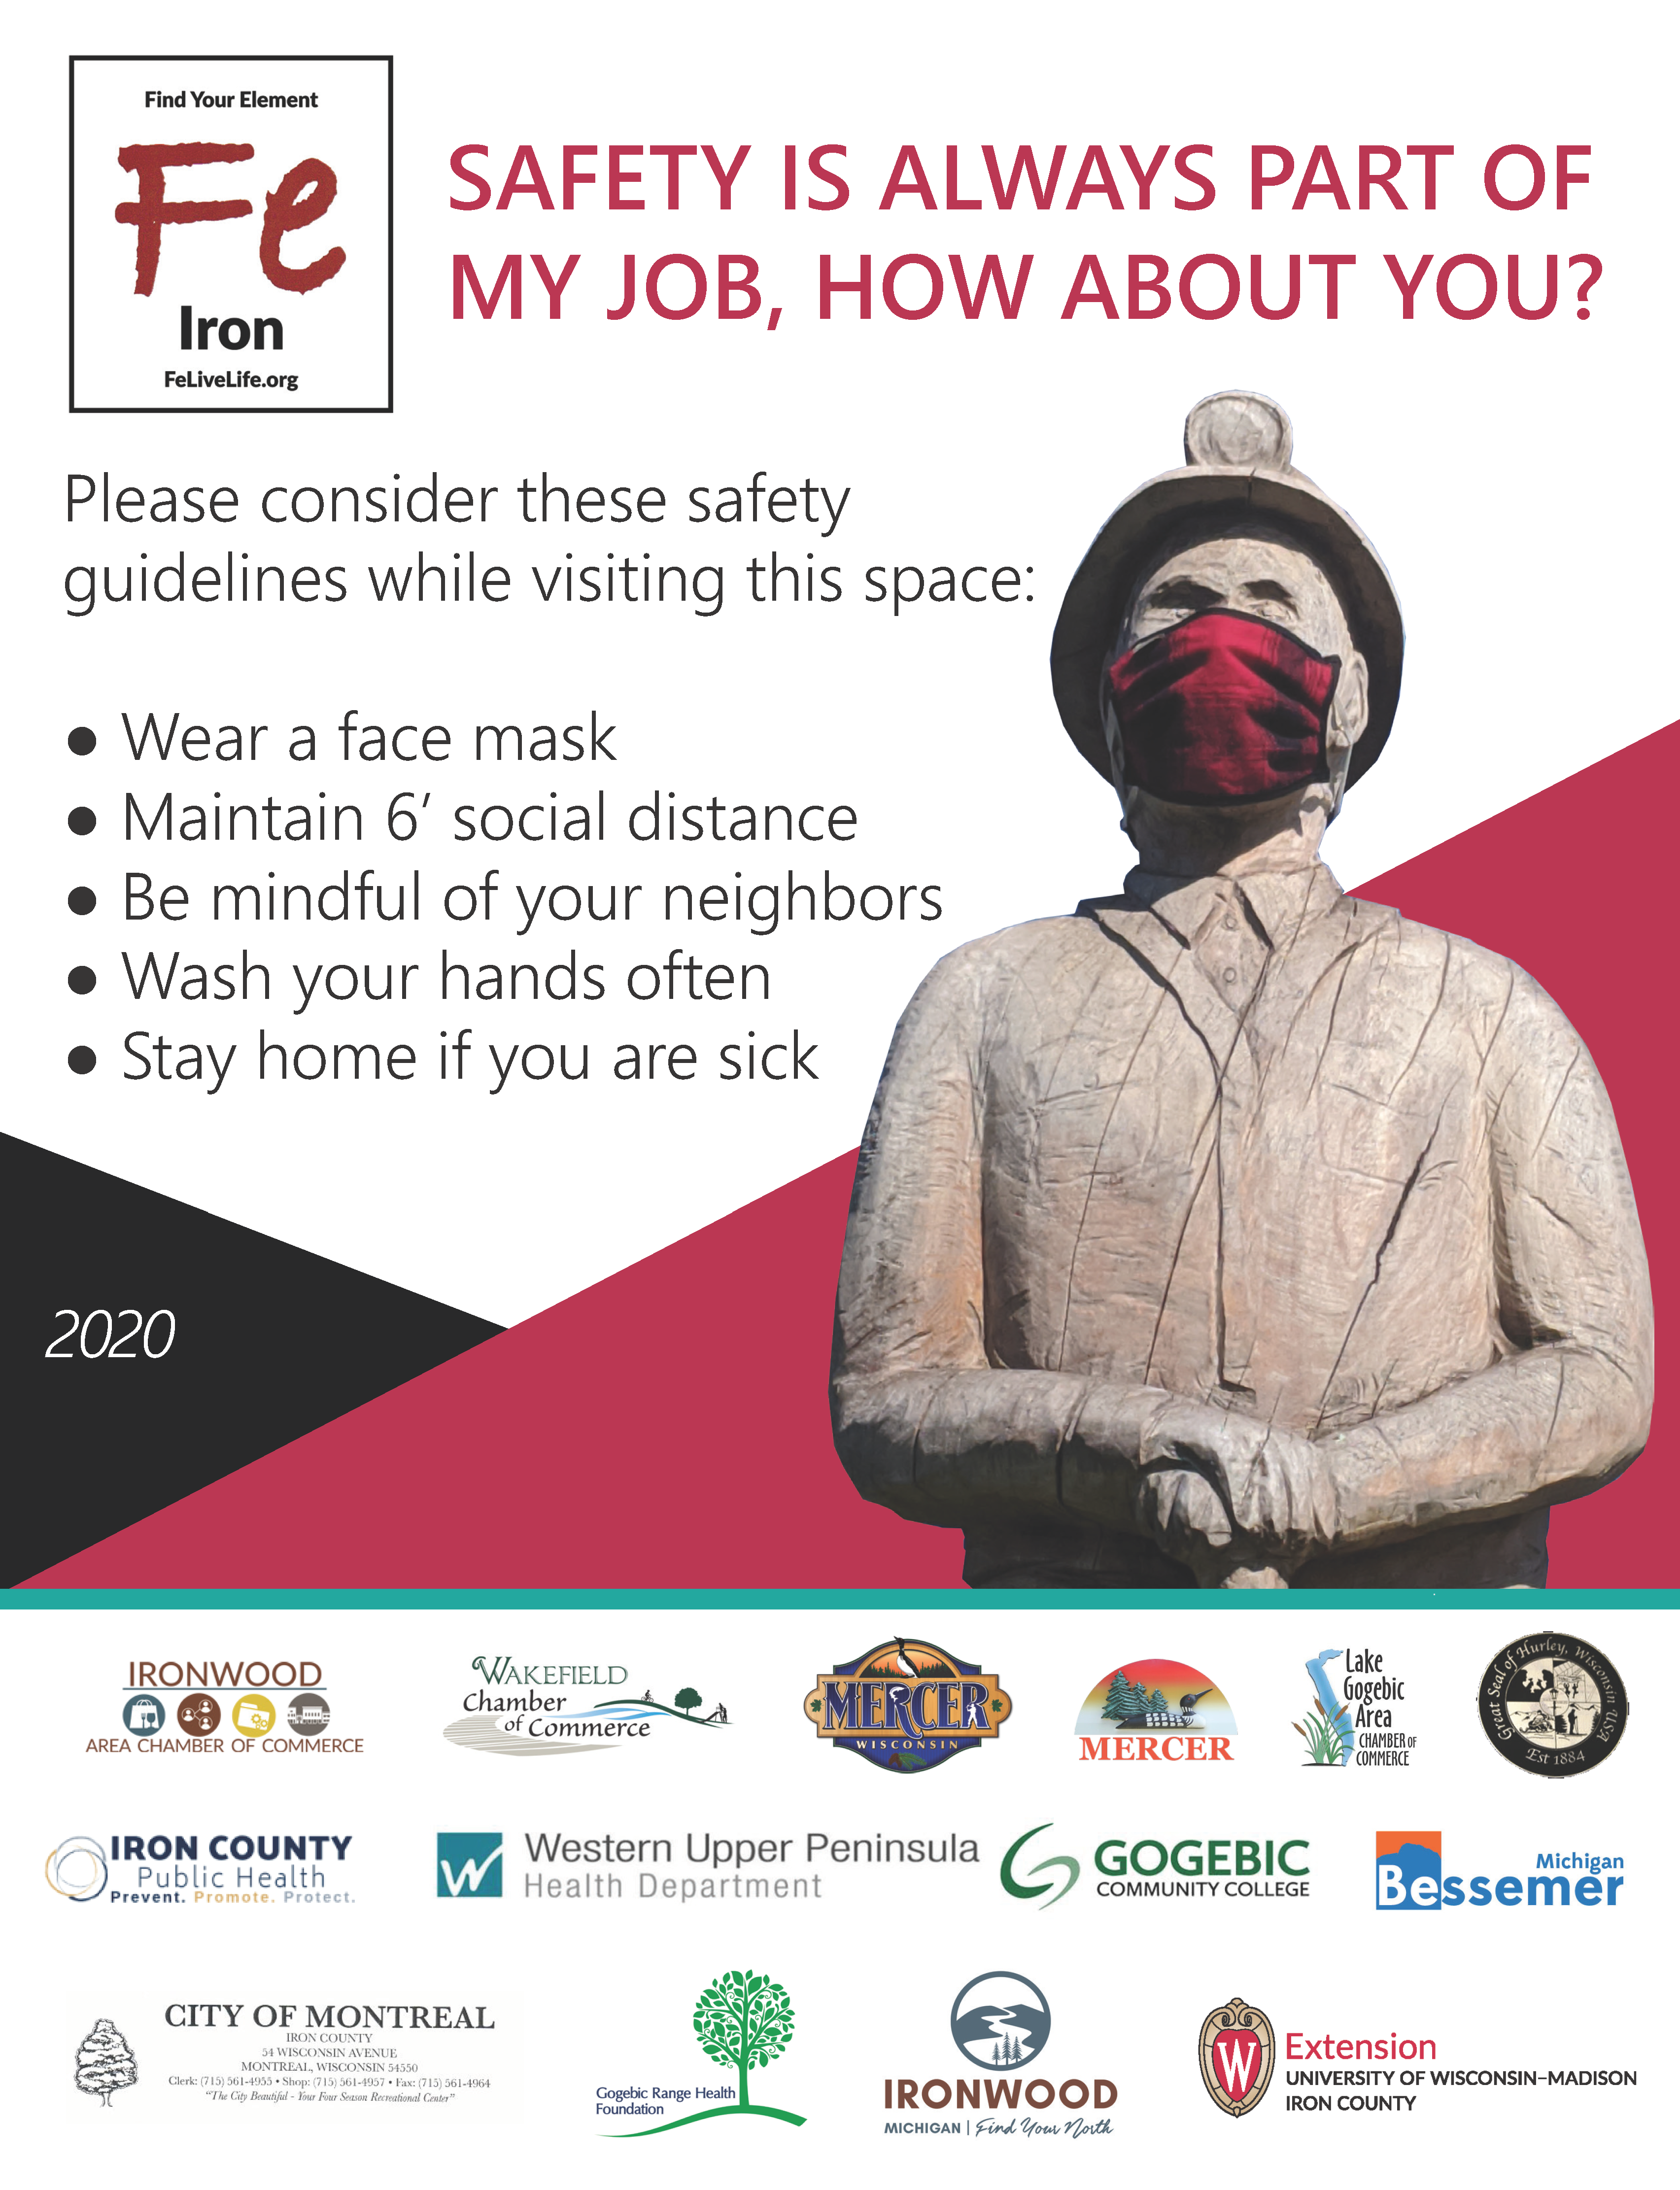 FeLiveLife Partners and Friends teaming up to feature local art as a reminder to Gogebic Range residents and visitors about COVID-19 guidelines